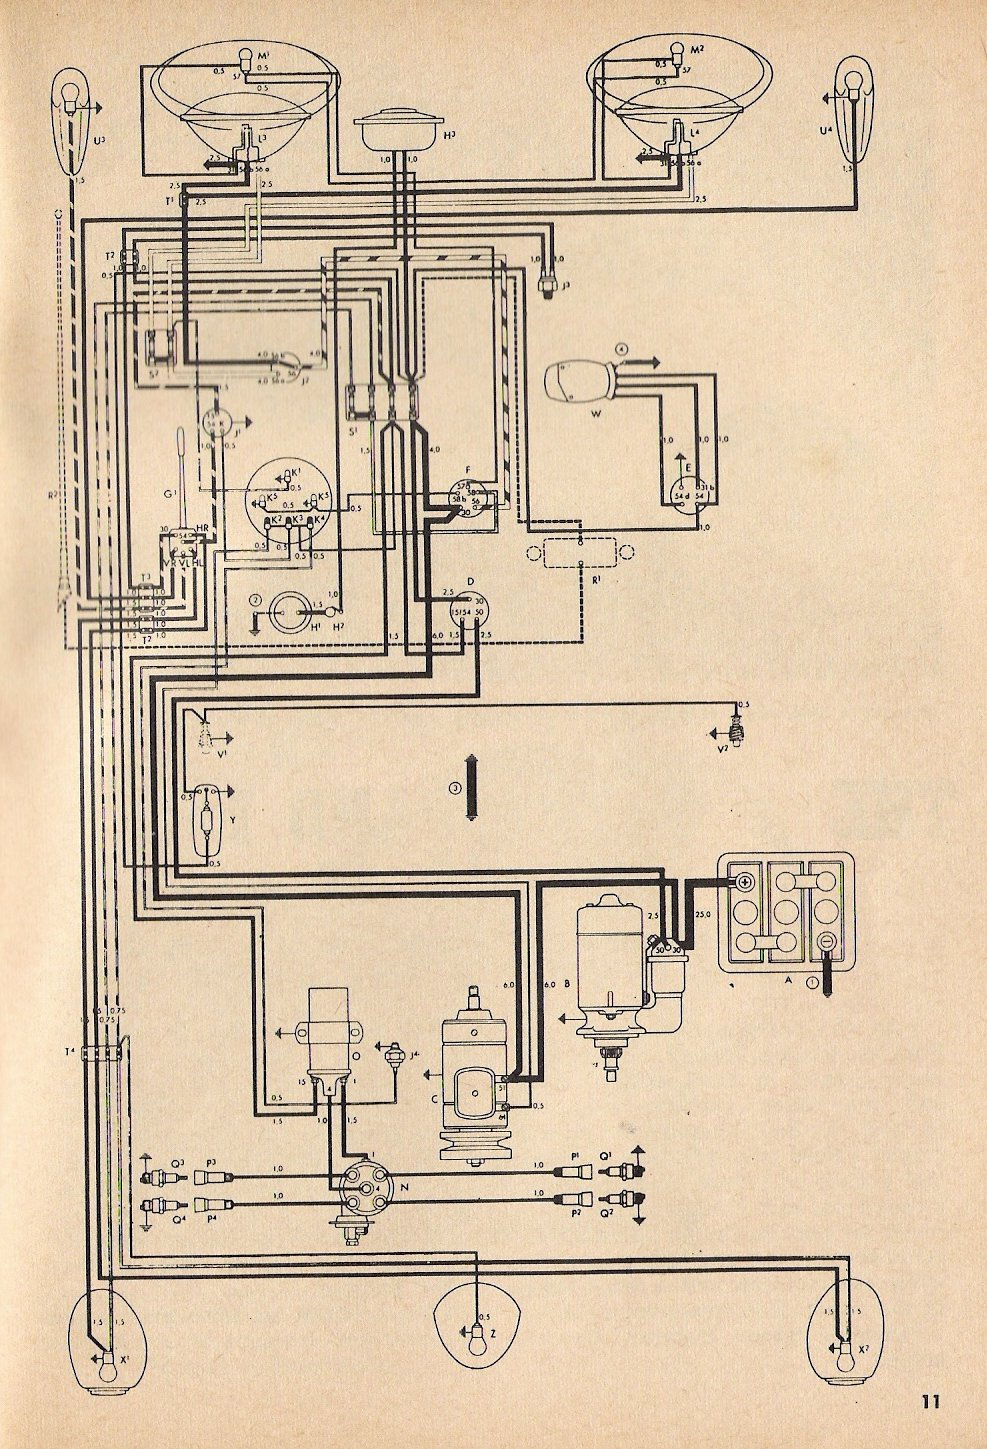 thesamba com type 1 wiring diagrams 73 vw beetle wiring diagram vw beetle diagram #39